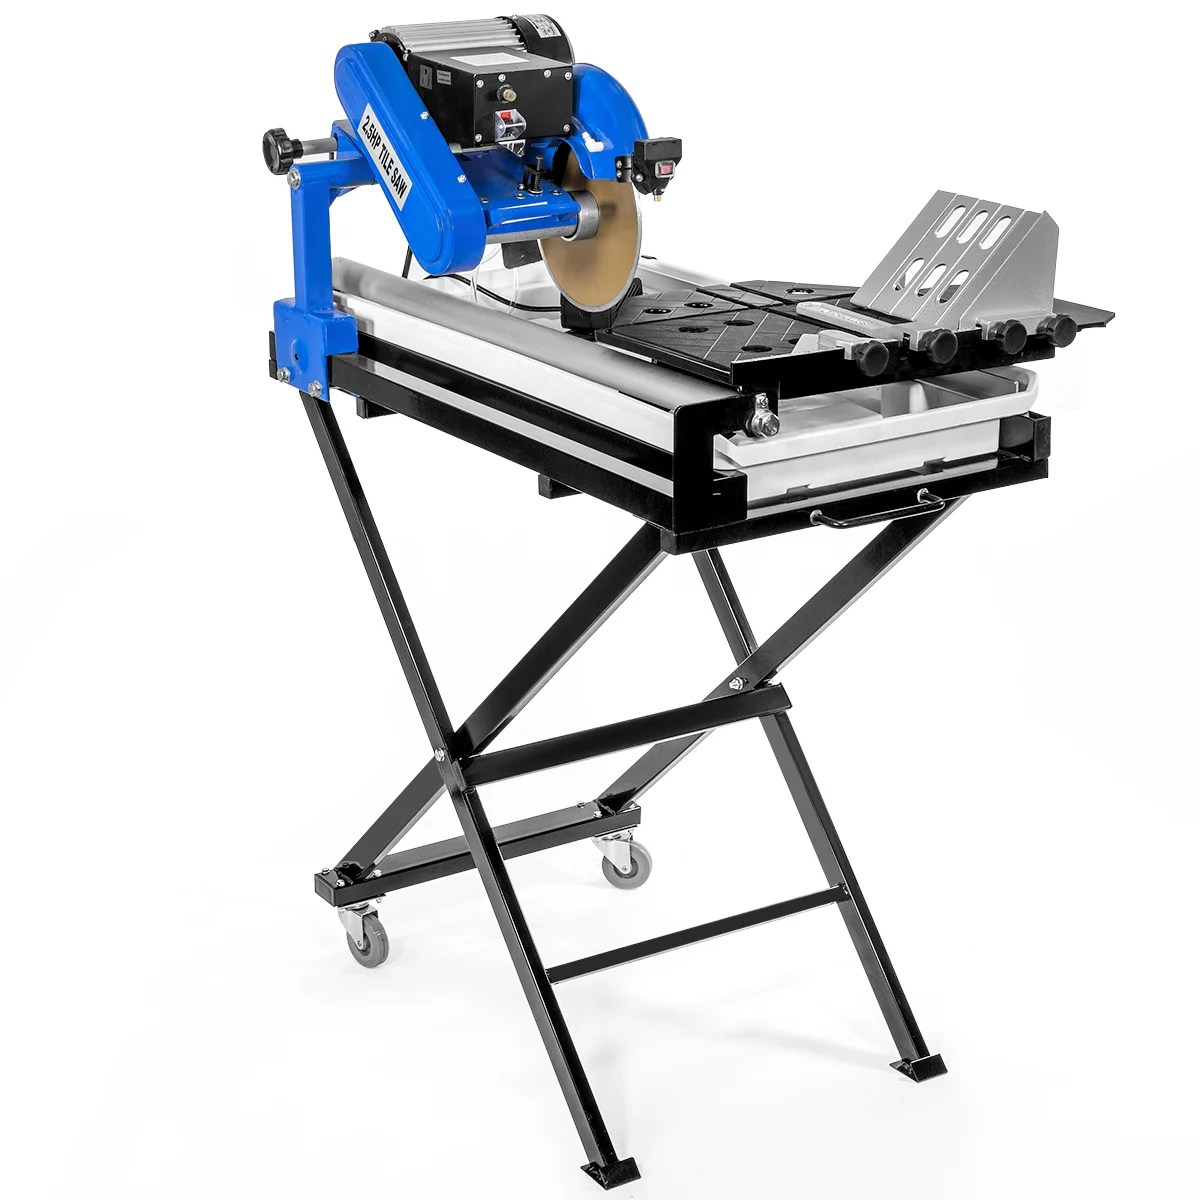 stark 27 inch wet tile saw cut build in bean light guide water pump w tray foldable stands 2 5hp motor walmart com